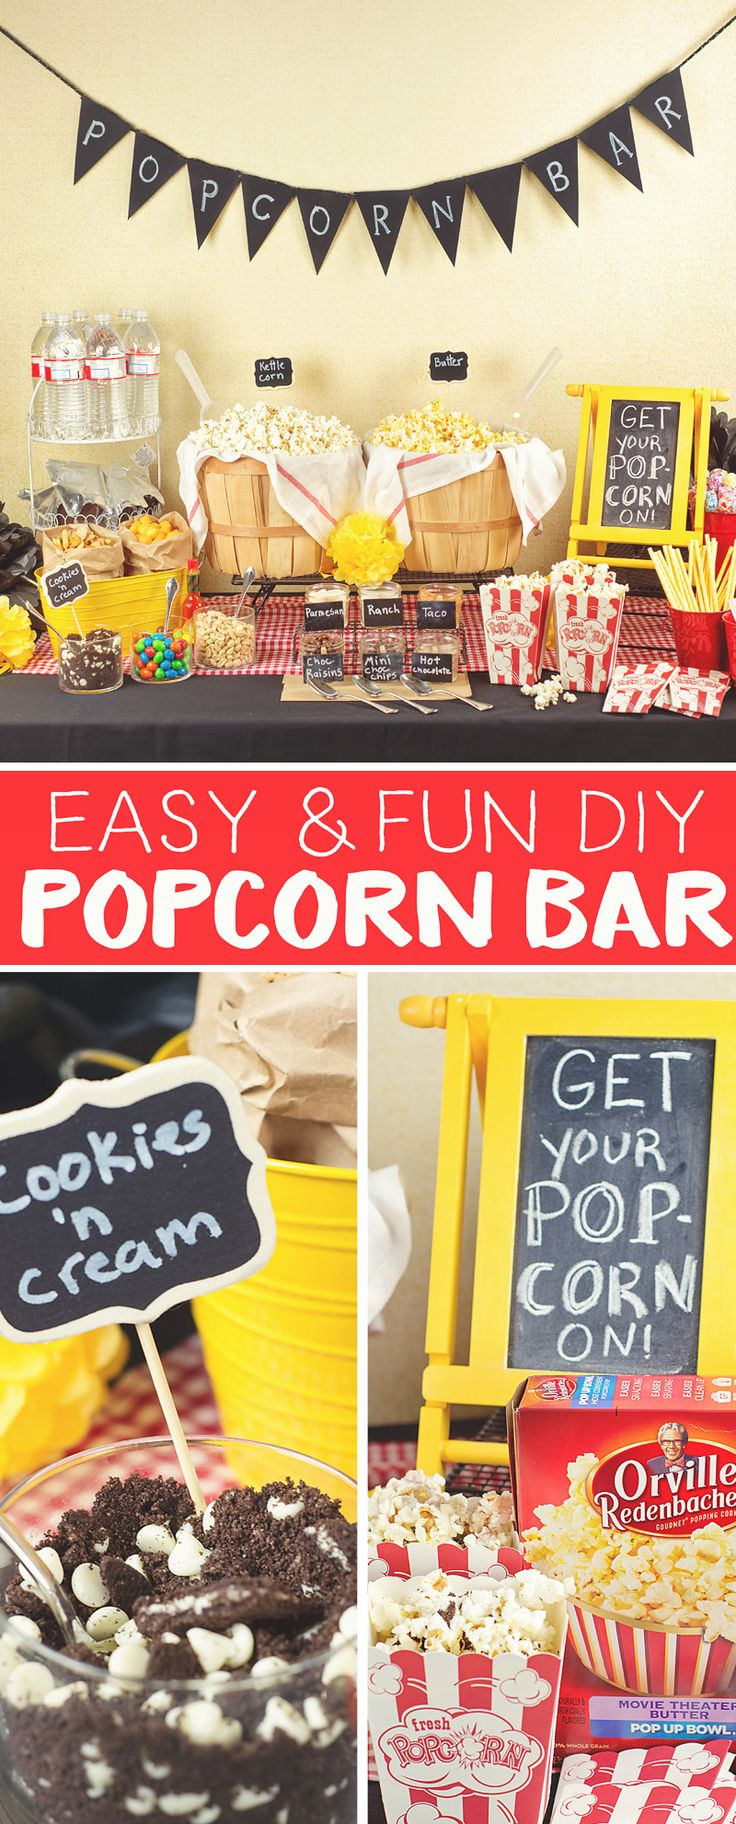 Tips for Creating the Best DIY Popcorn Bar